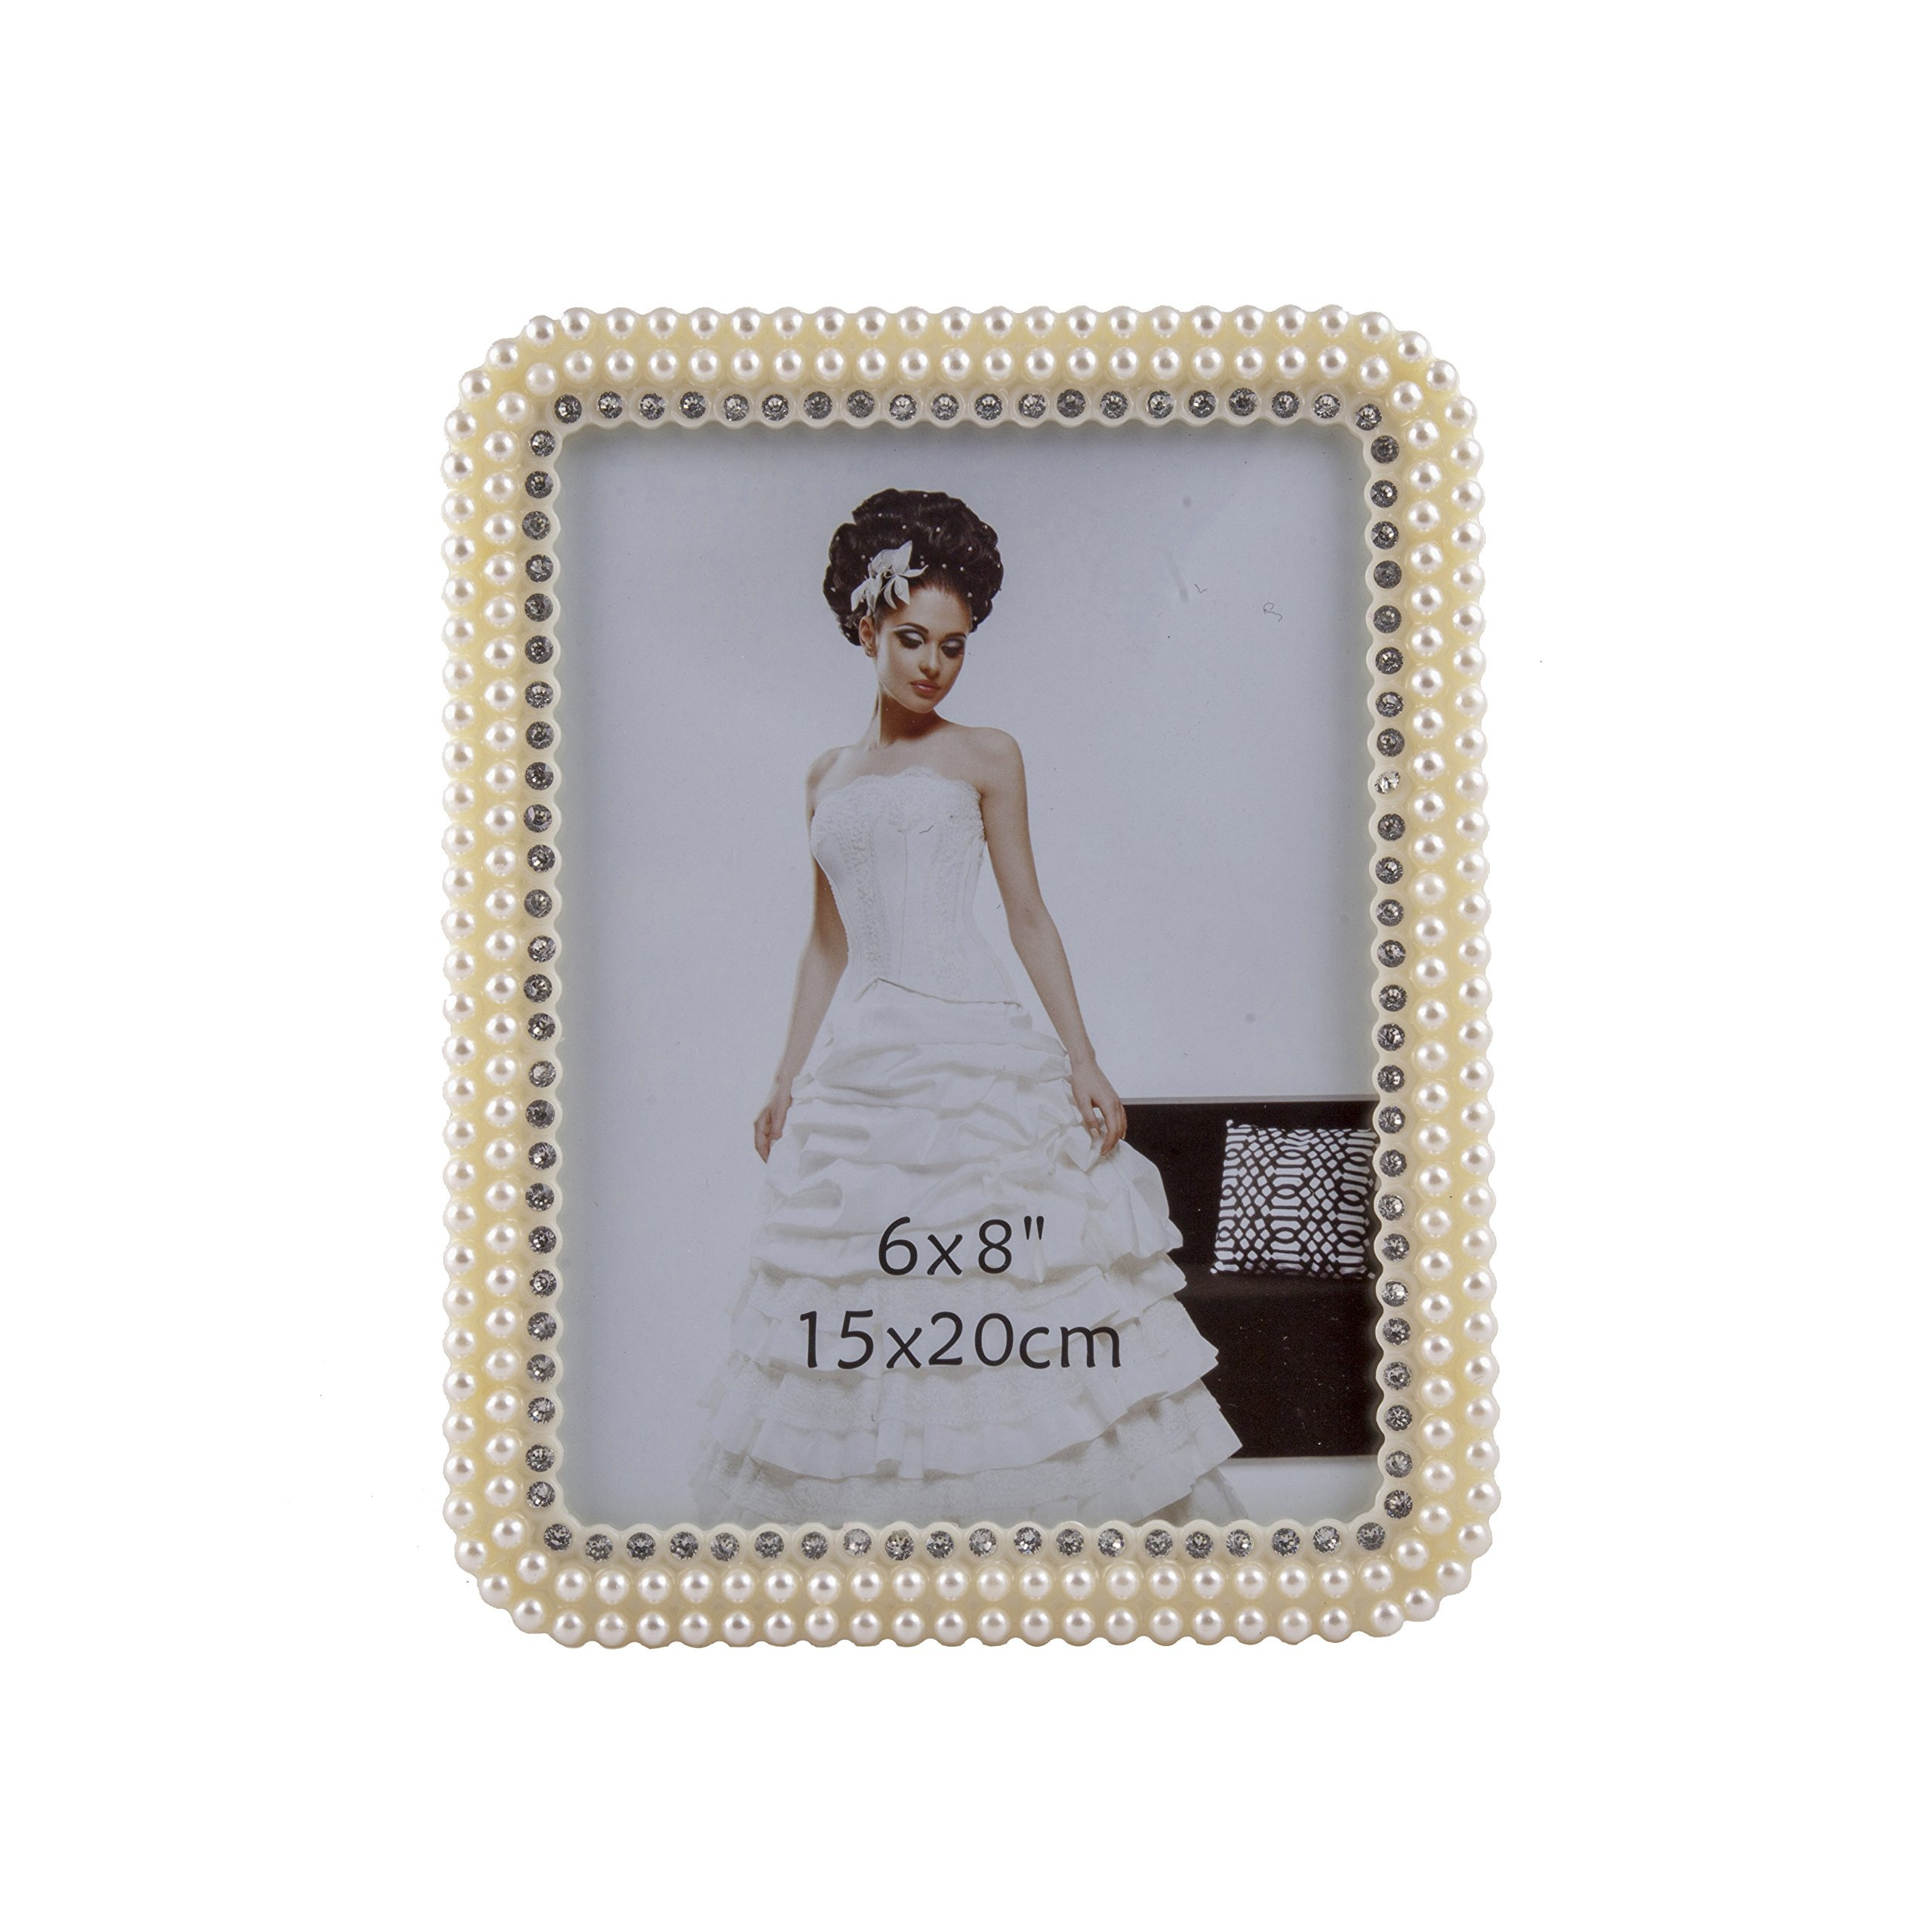 Artistic India 6 X 8 inch Photo Frame Made of High Definition Glass for Table Top Display